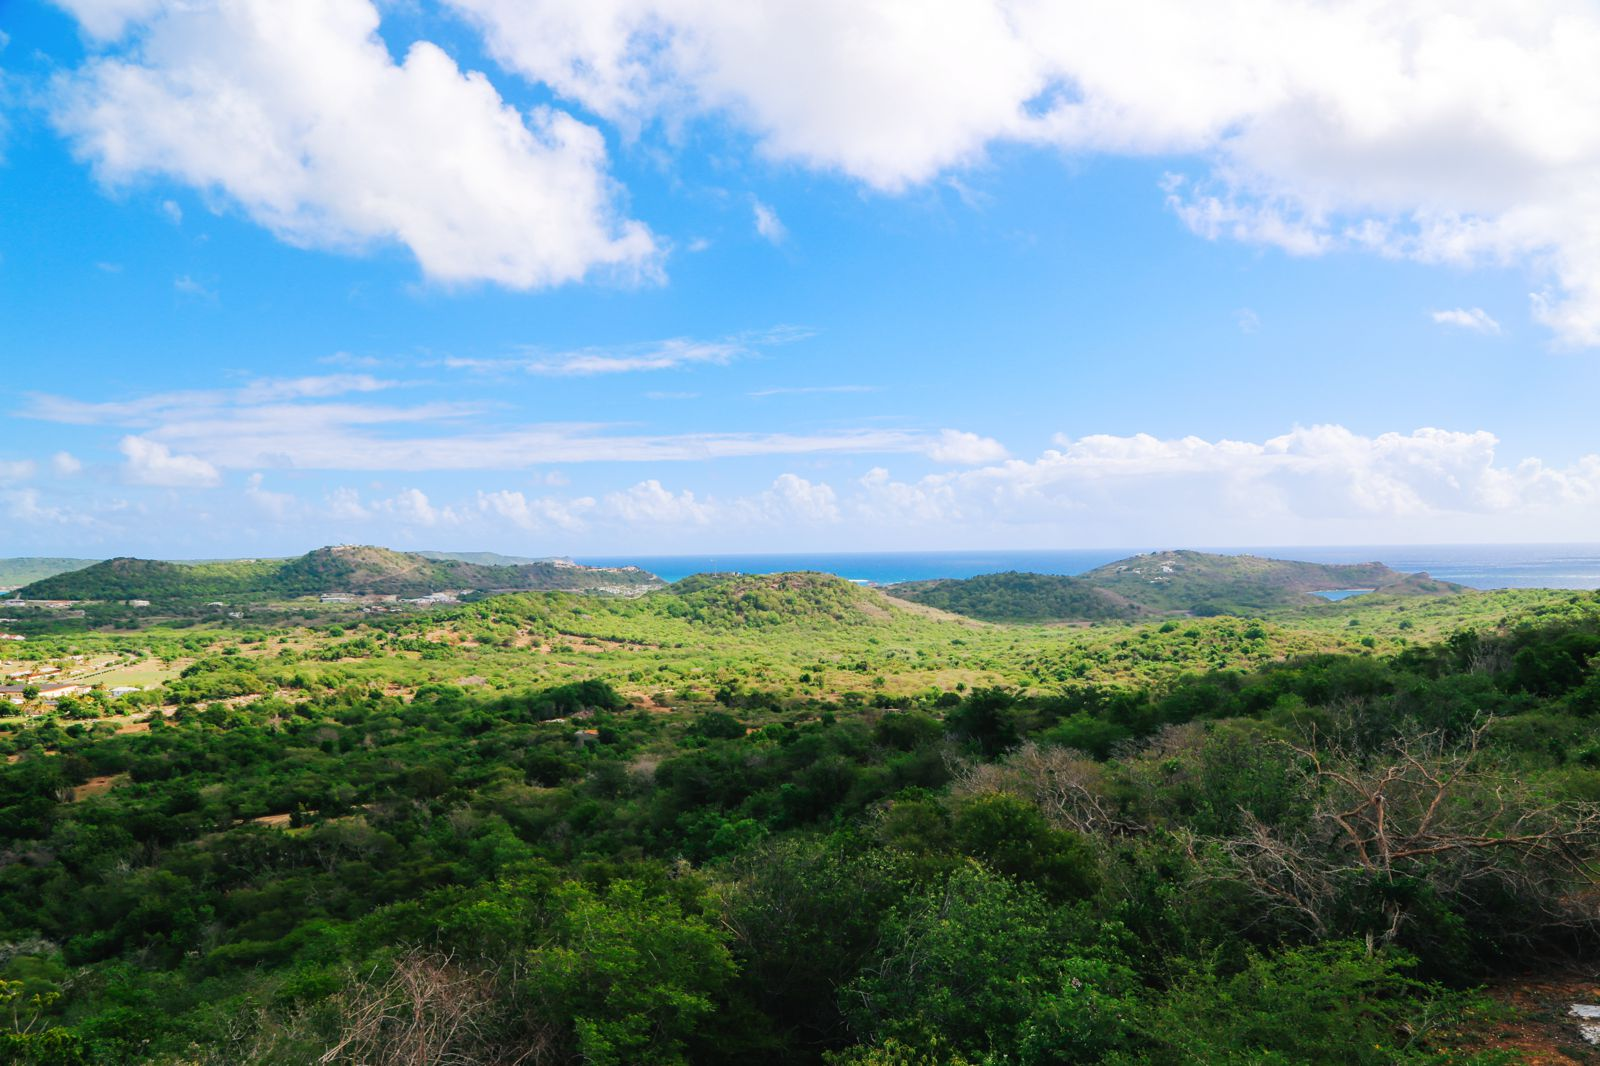 Exploring The Caribbean Island Of Antigua By Land - Part 1 (42)